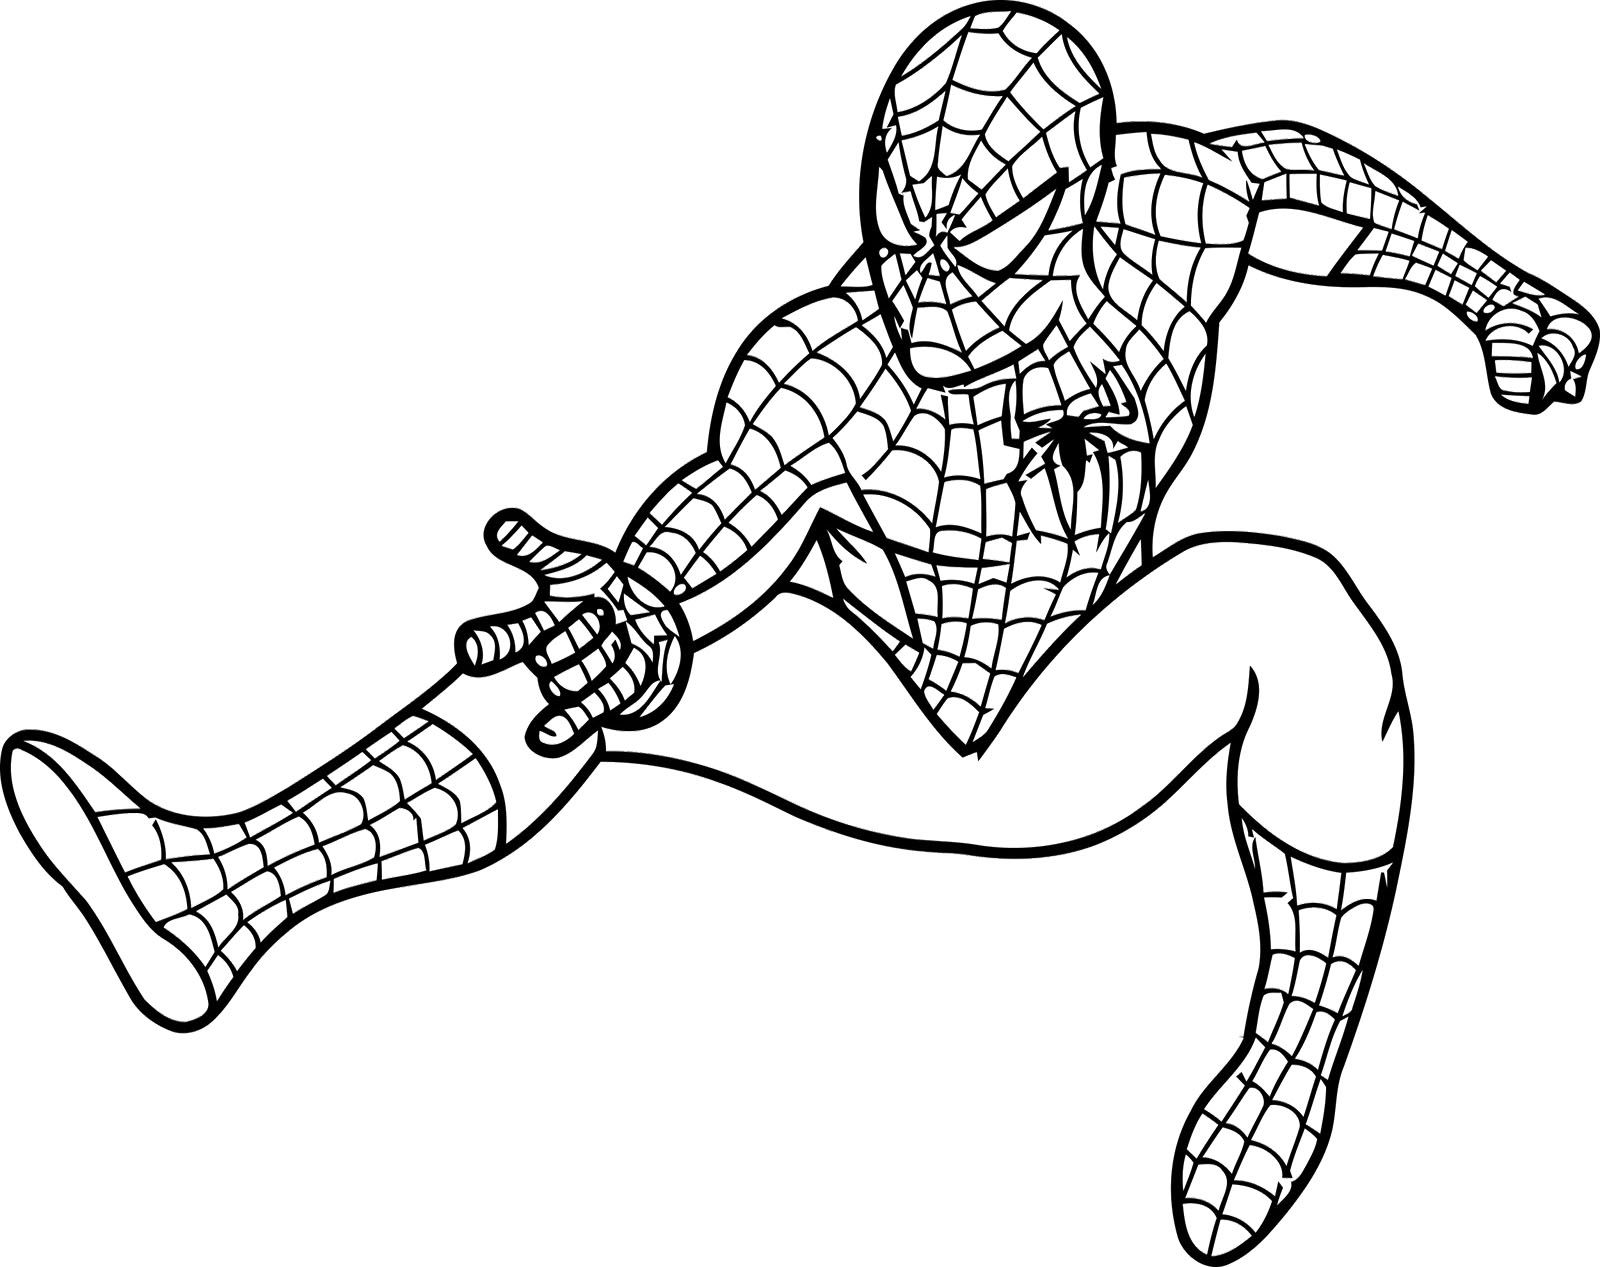 spiderman coloring pages printable Ironman And Spiderman Coloring Pages Free Printout – Texas Life  spiderman coloring pages printable